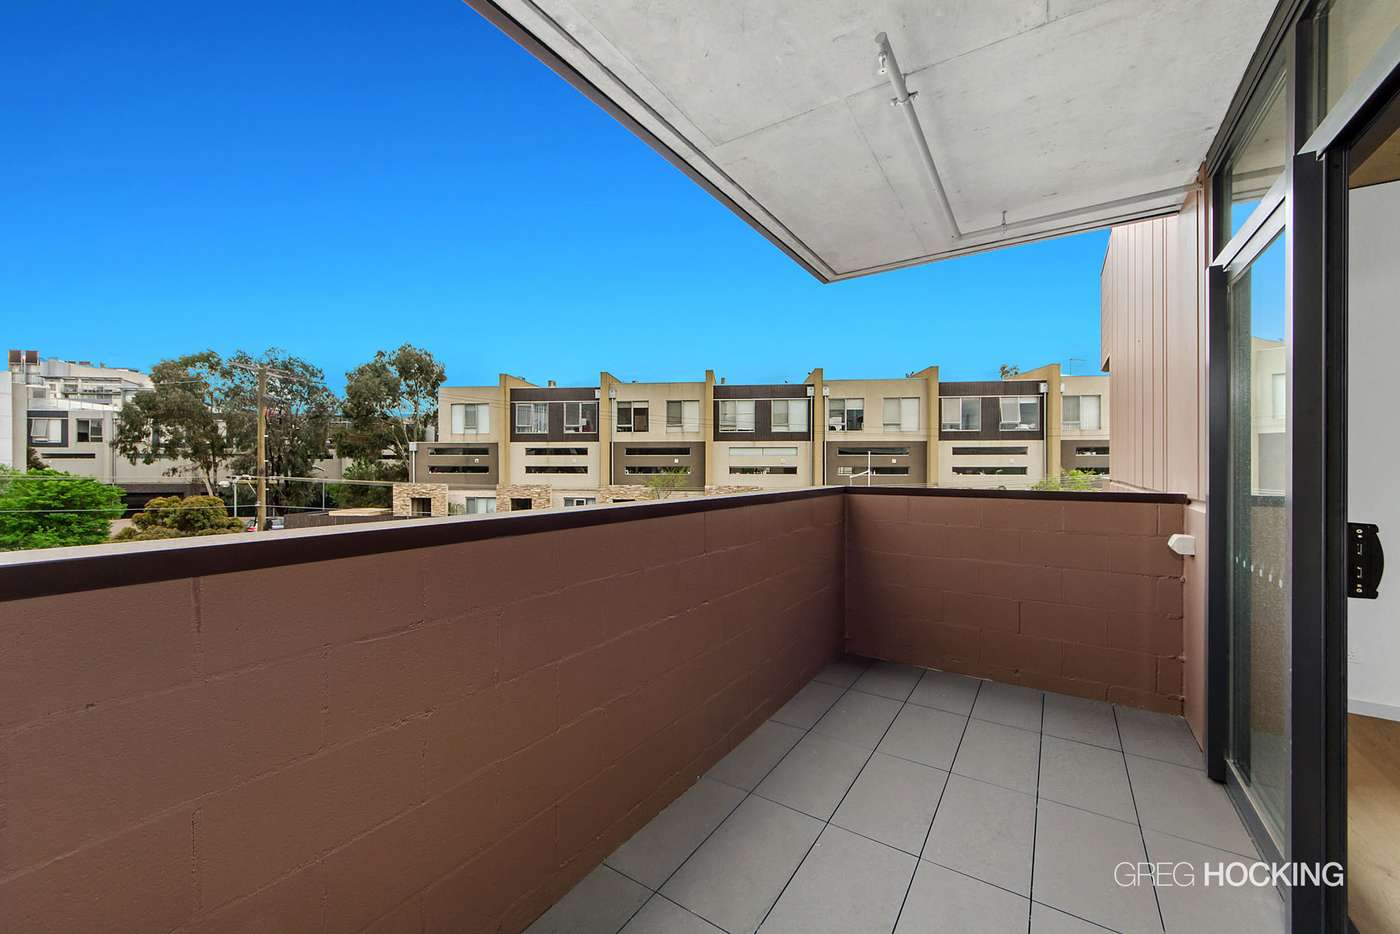 Fifth view of Homely apartment listing, 202/77-81 Hobsons Road, Kensington VIC 3031